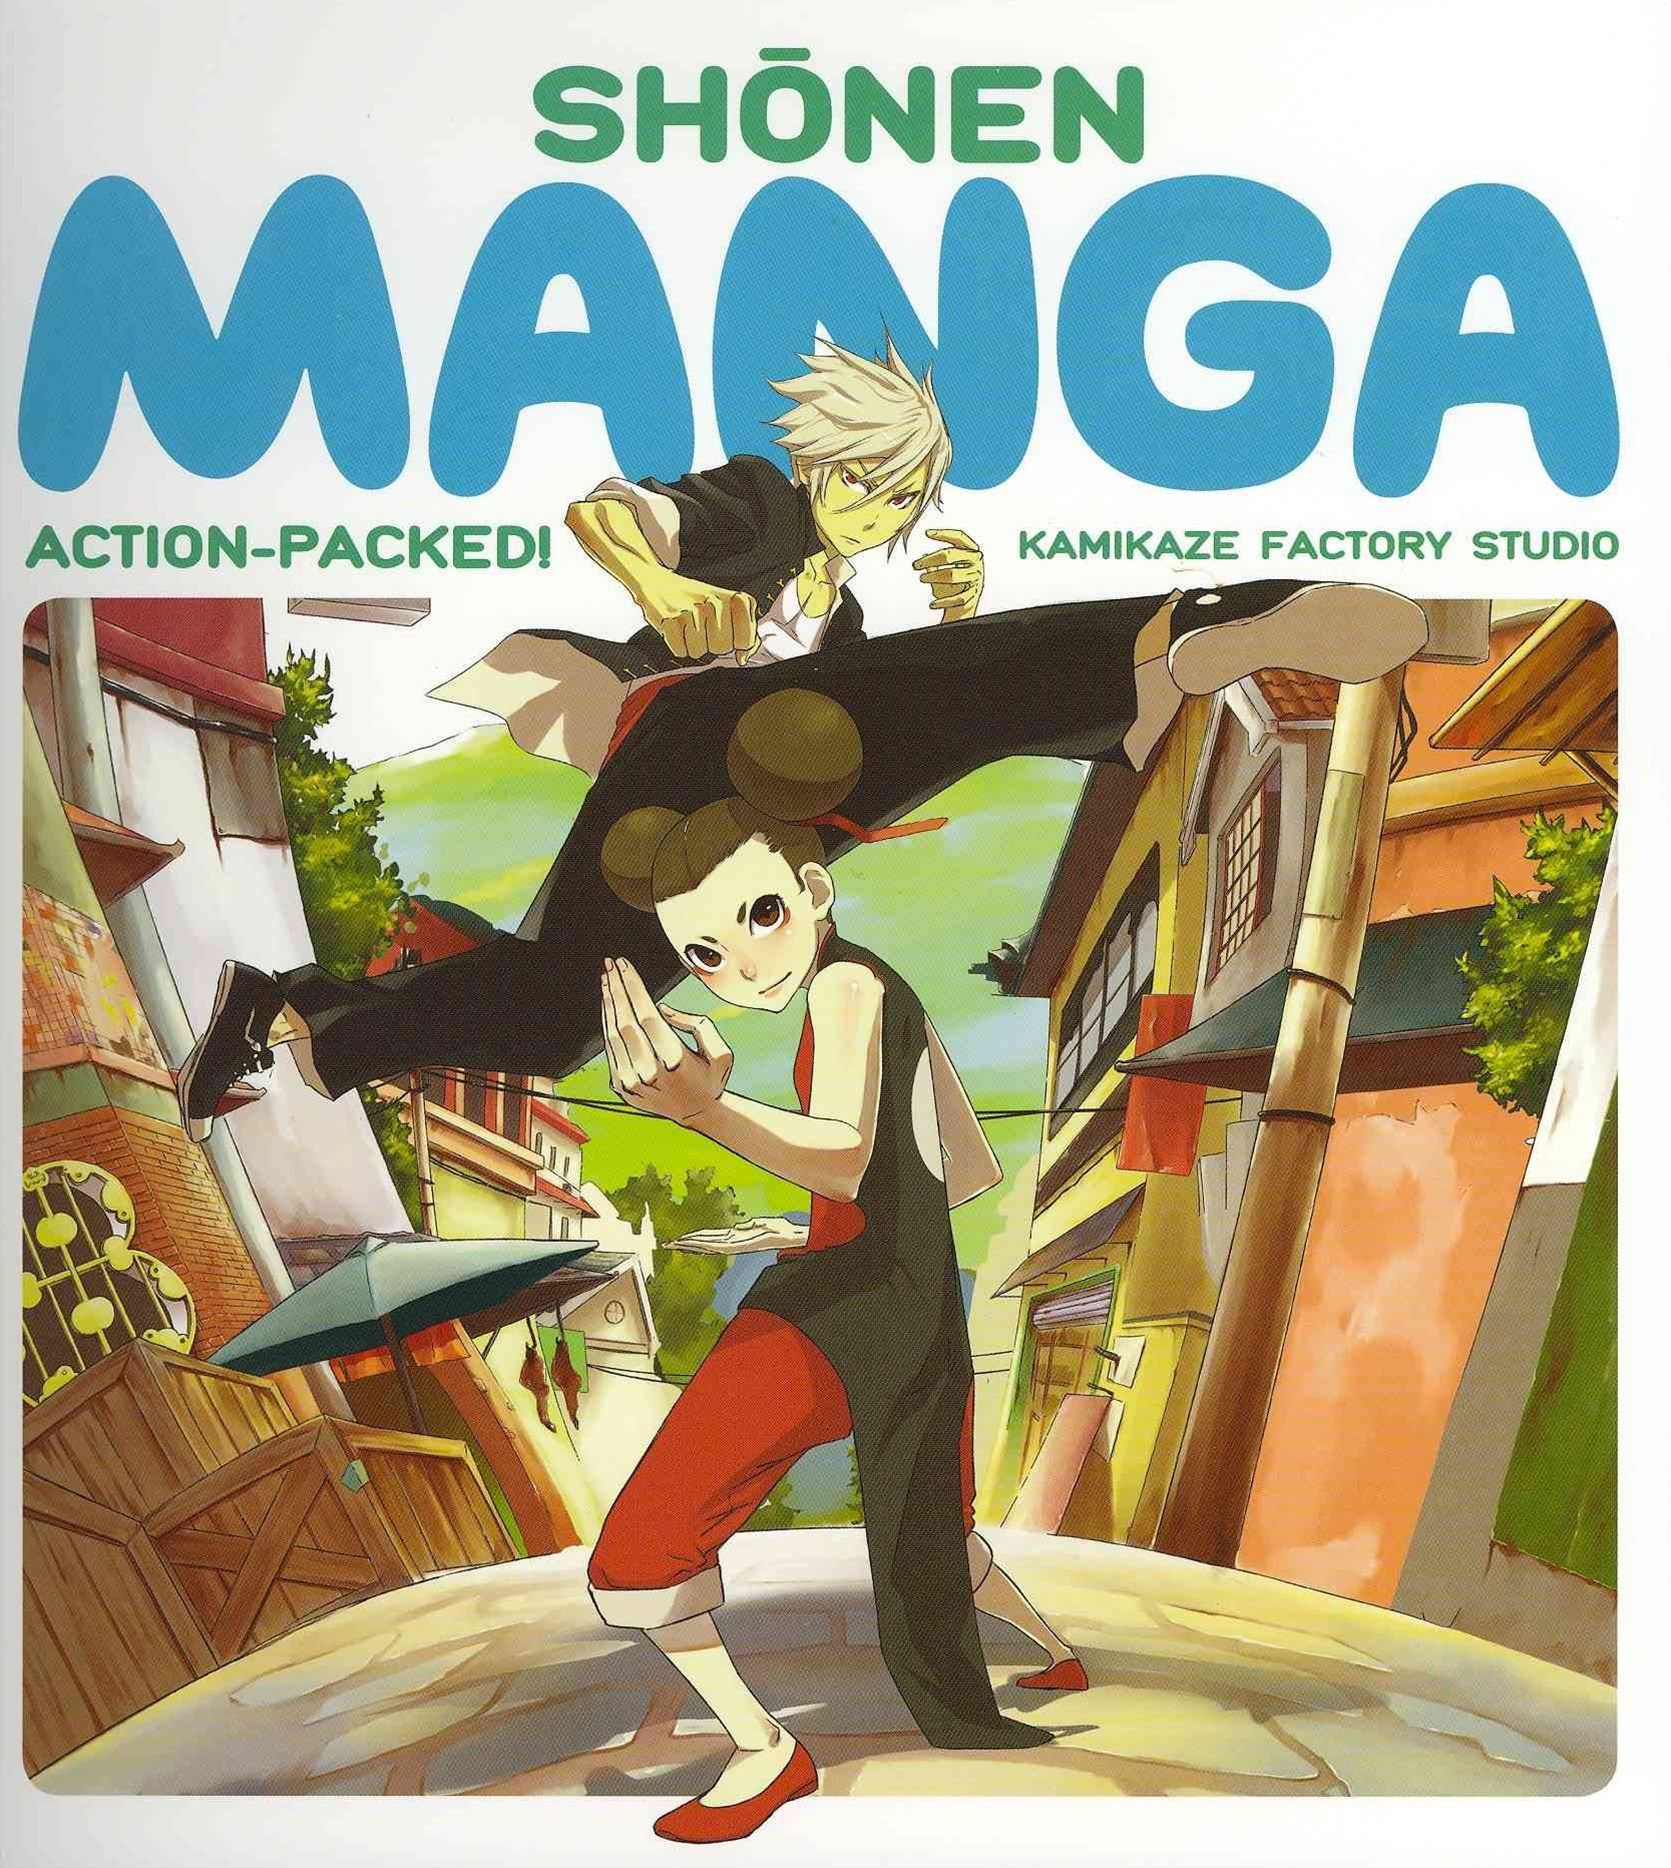 Shonen Manga: Action Packed!